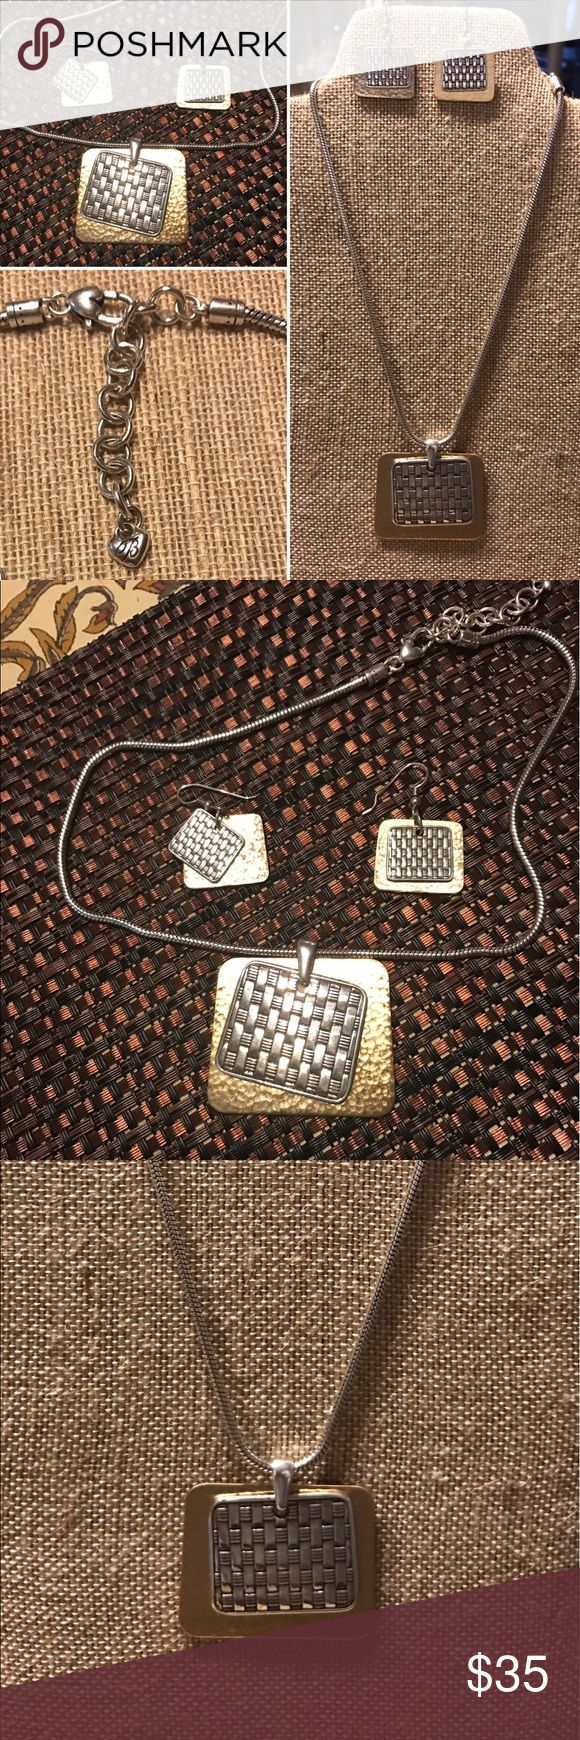 Brighton Set Brighton Jewelry.  Geometric Two tone earring and necklace set. Textured silver tone basket weave square and contrast hammered gold tone square. Brighton Jewelry Necklaces